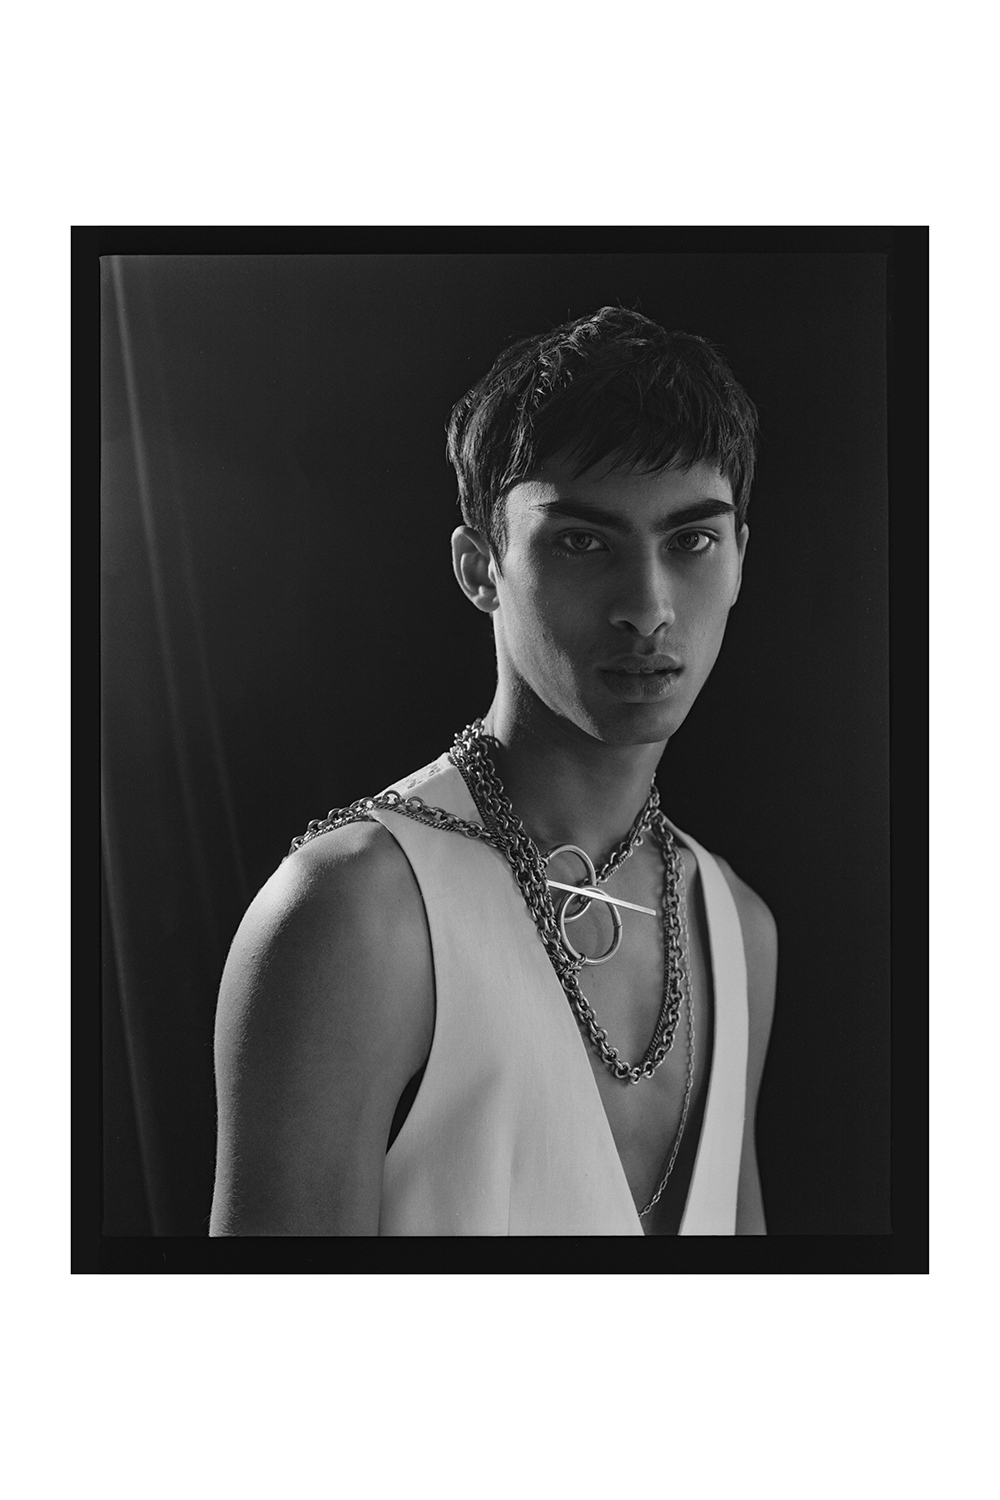 Tissa Fernandez wearing Ann Demeulemeester jewellery and Reckless & Vain for Astrophe Homme fashion editorial by Aaron VIII